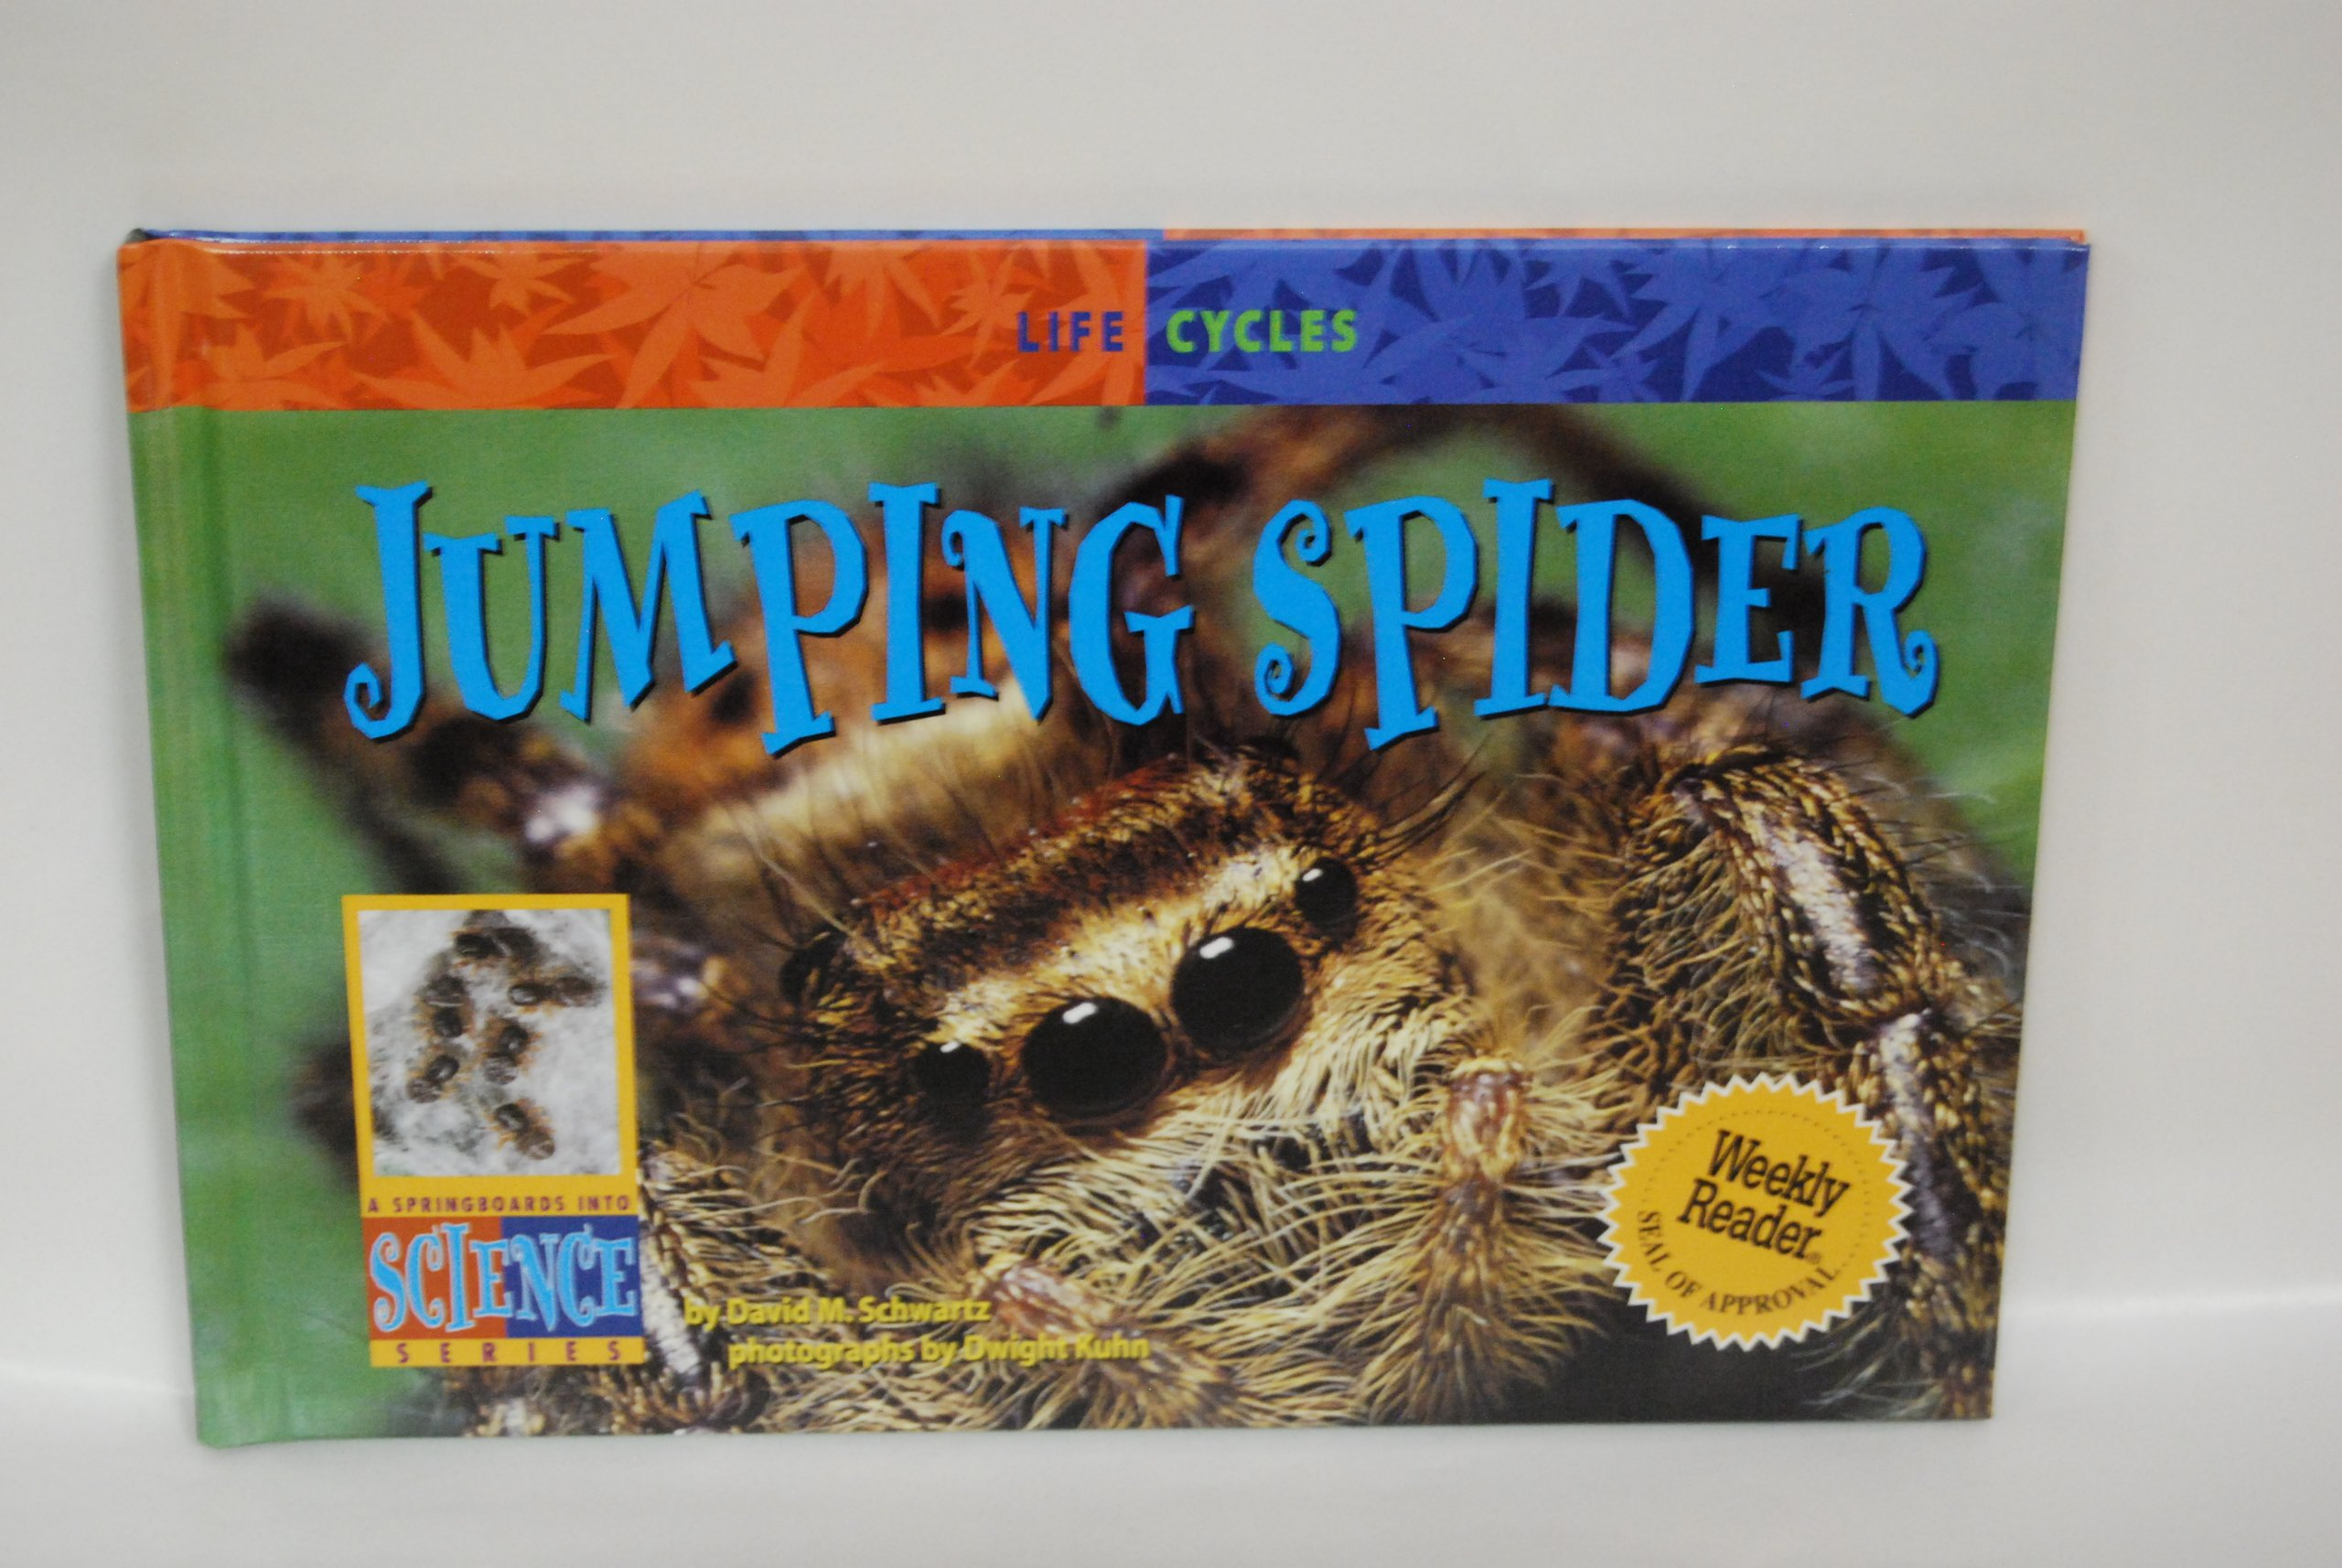 Jumping Spider (Life Cycles)